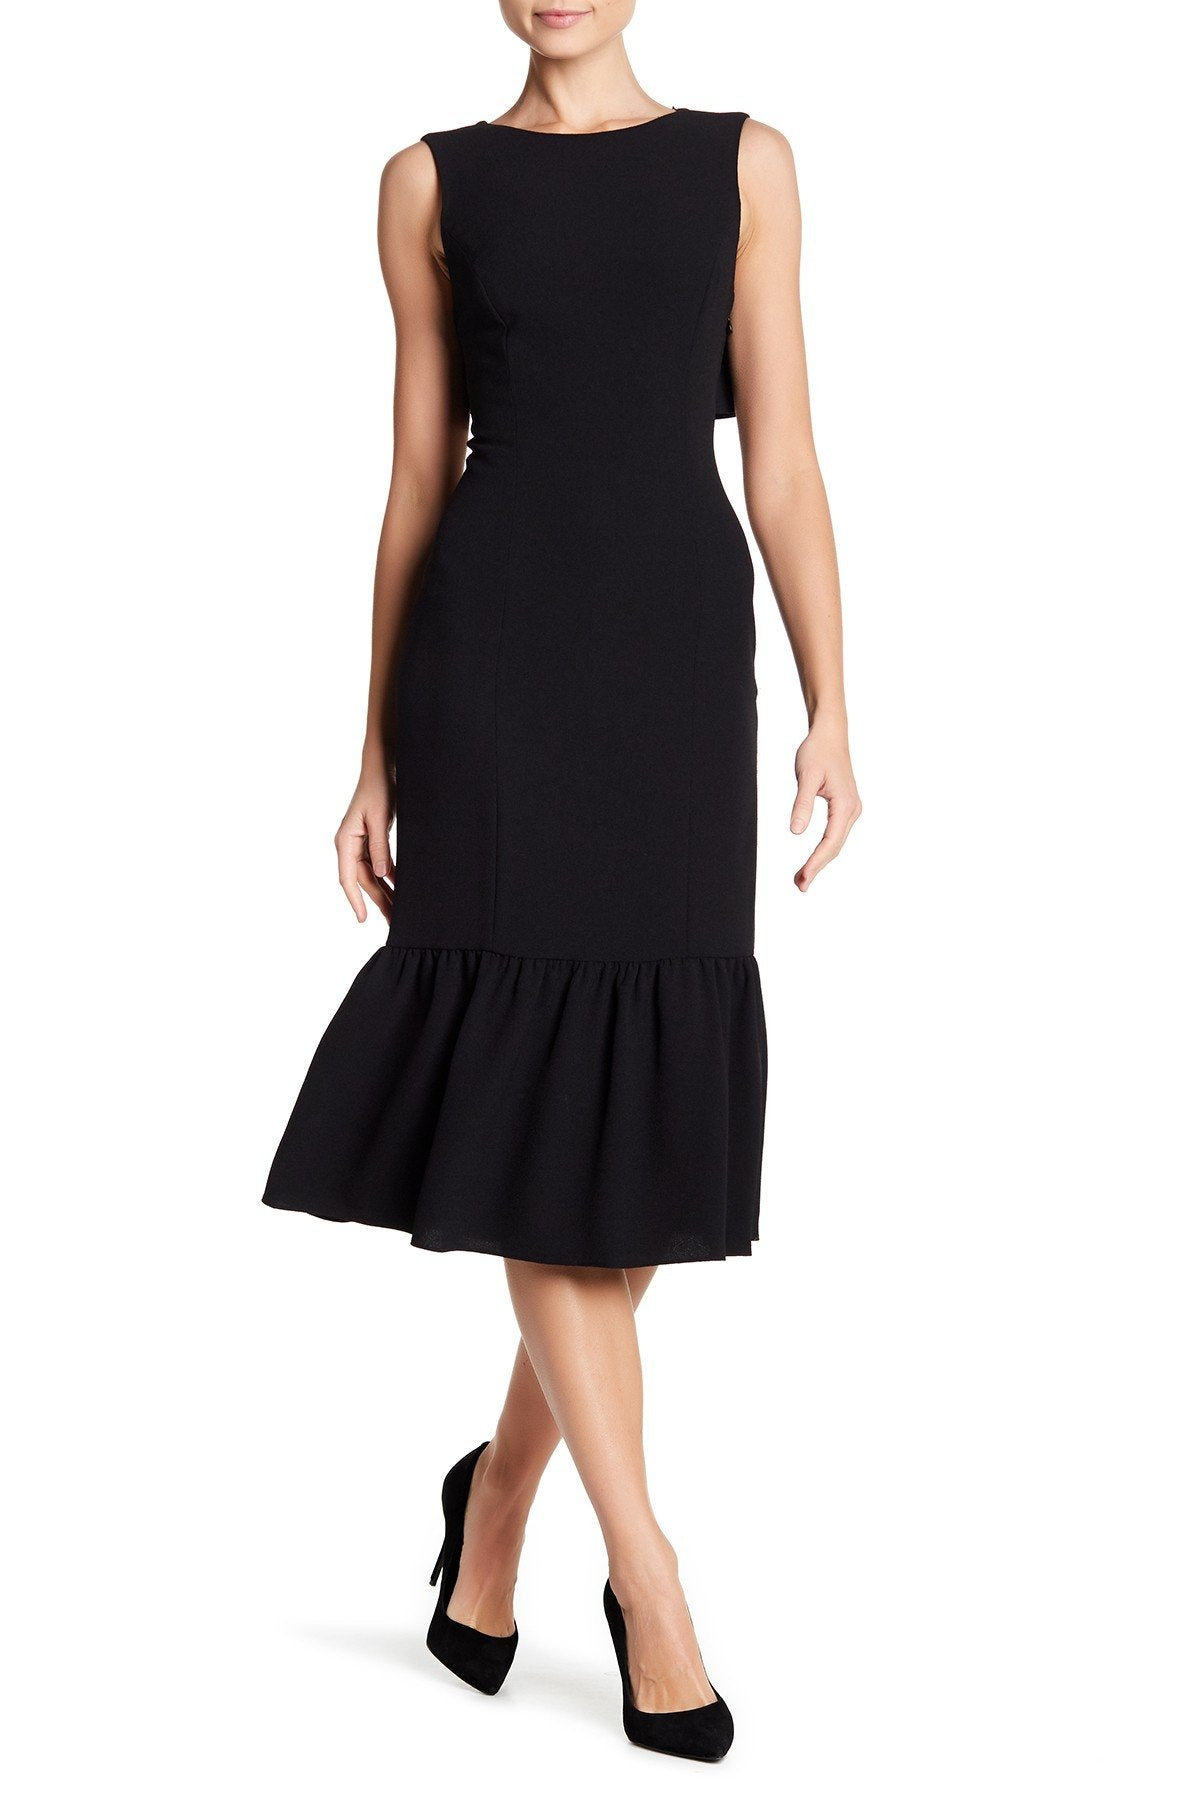 Adrianna Papell - AP1D100650 Ruffle Paneled Hem Sheath Dress In Black